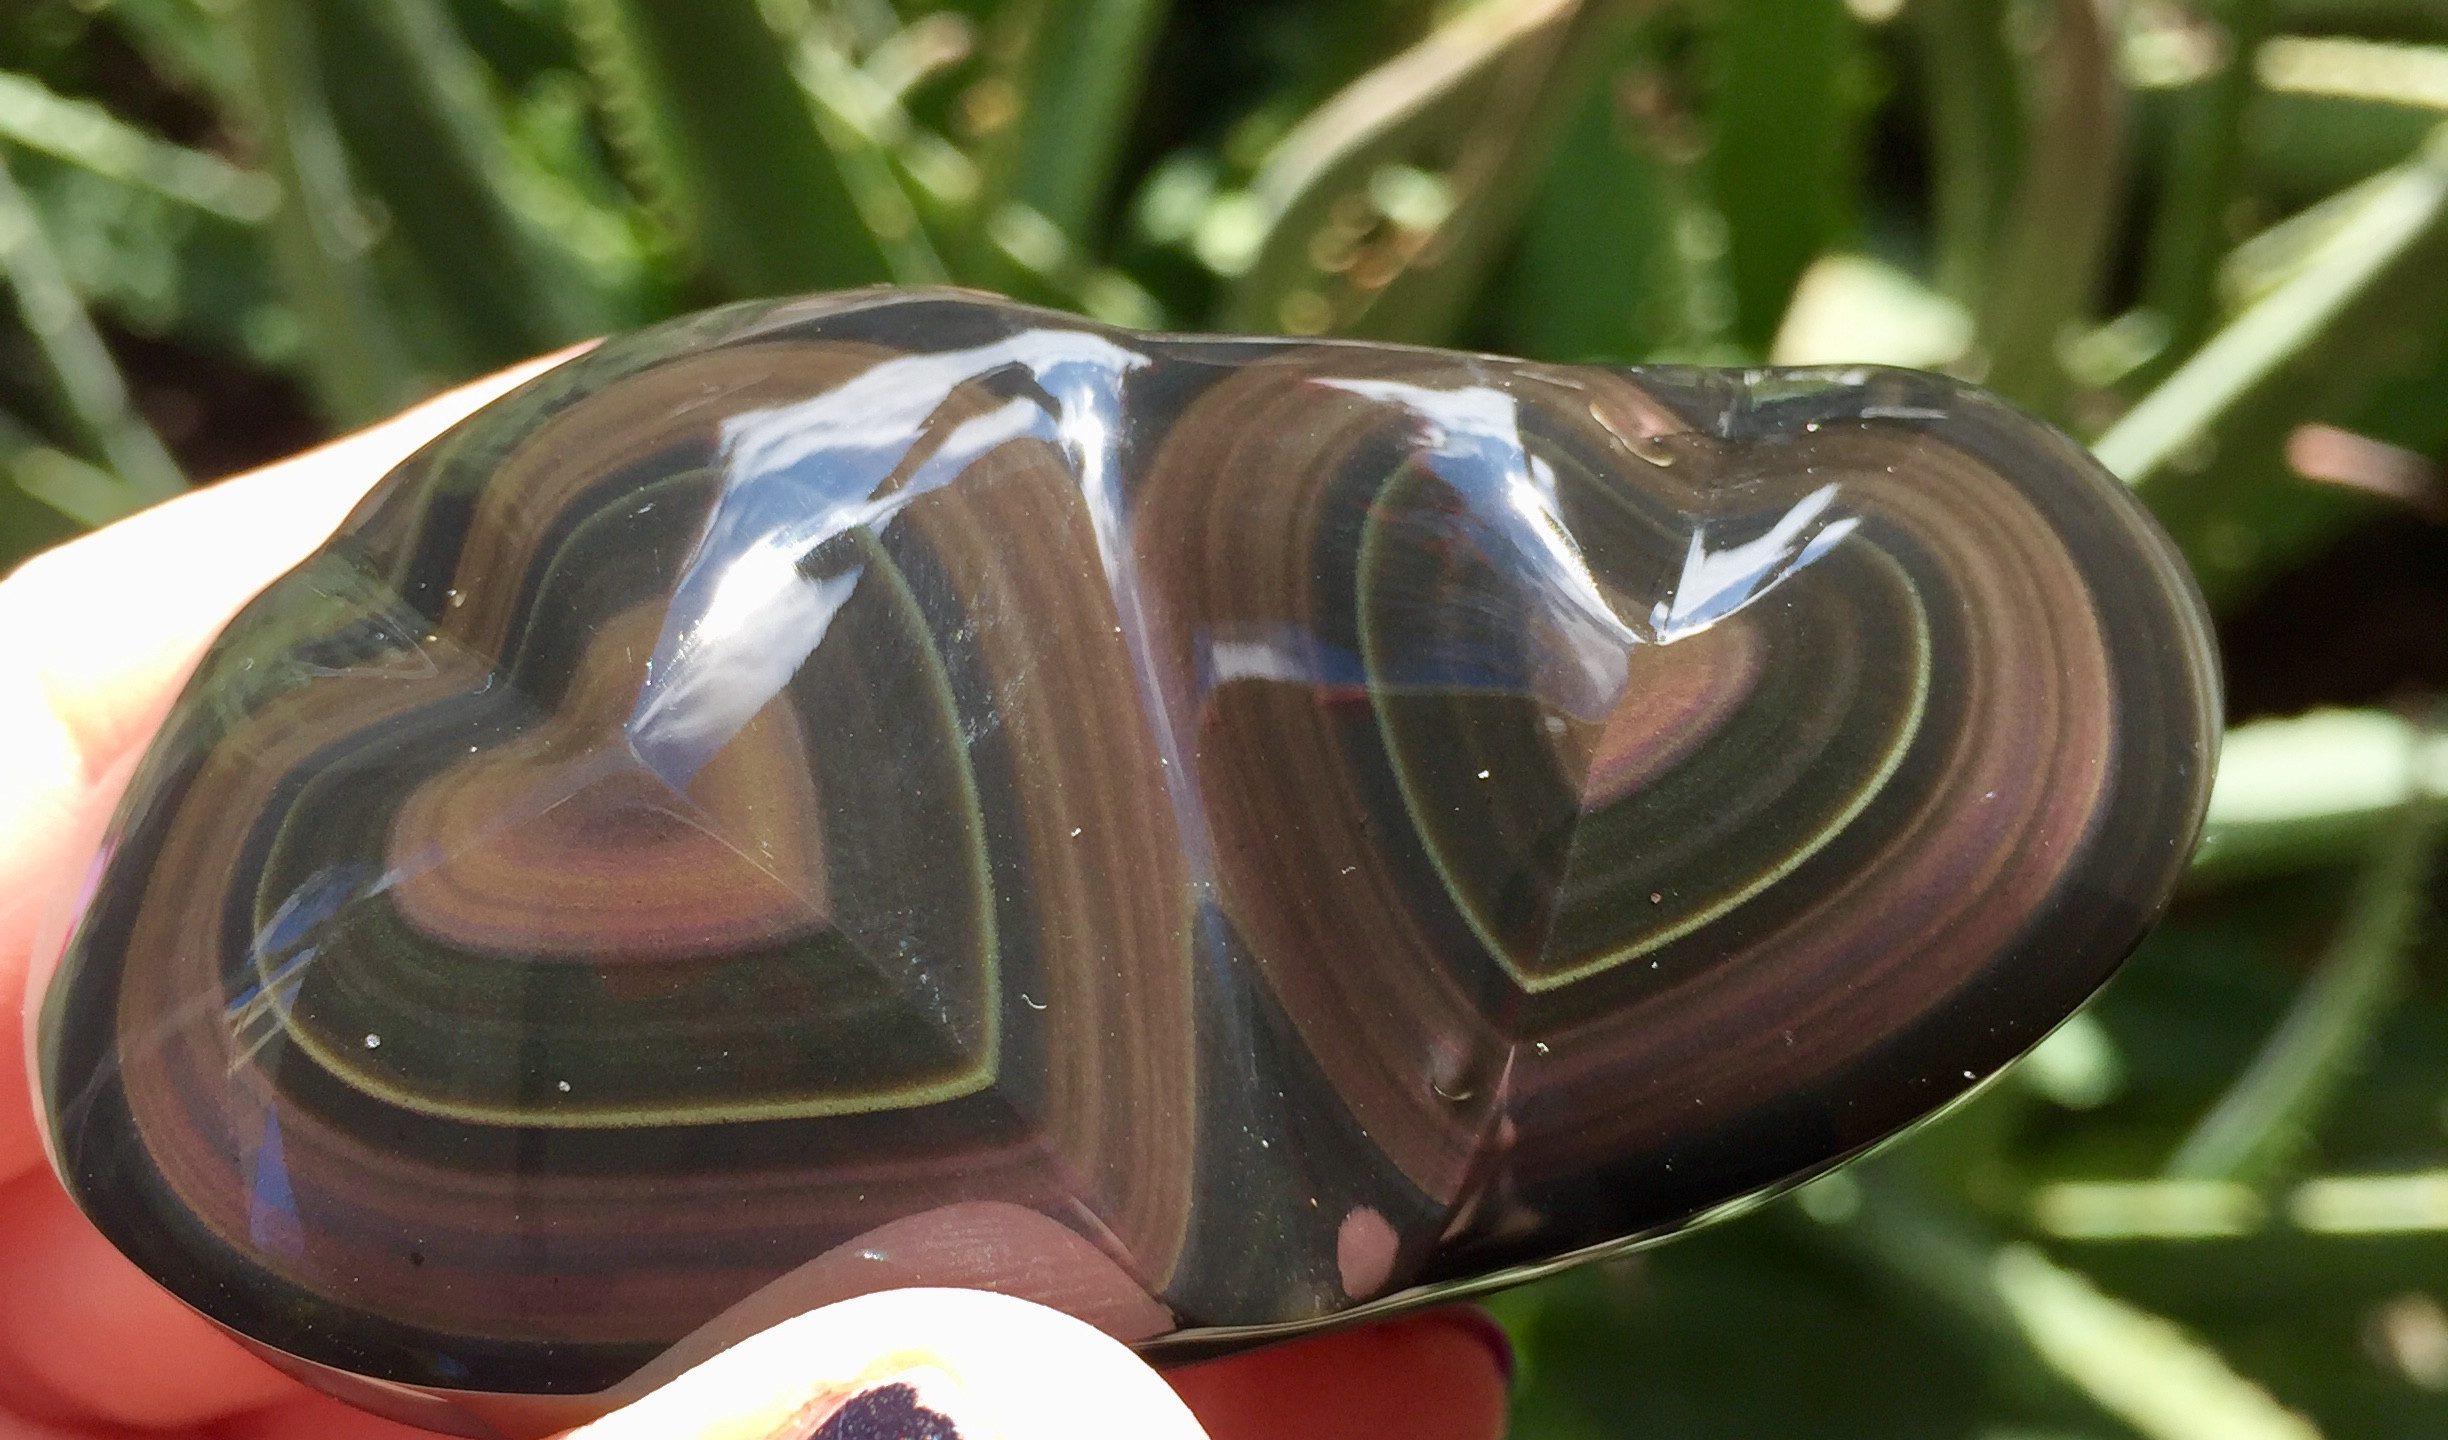 I LOVE hearts!! So to find these carved Rainbow Obsidian hearts made my day!